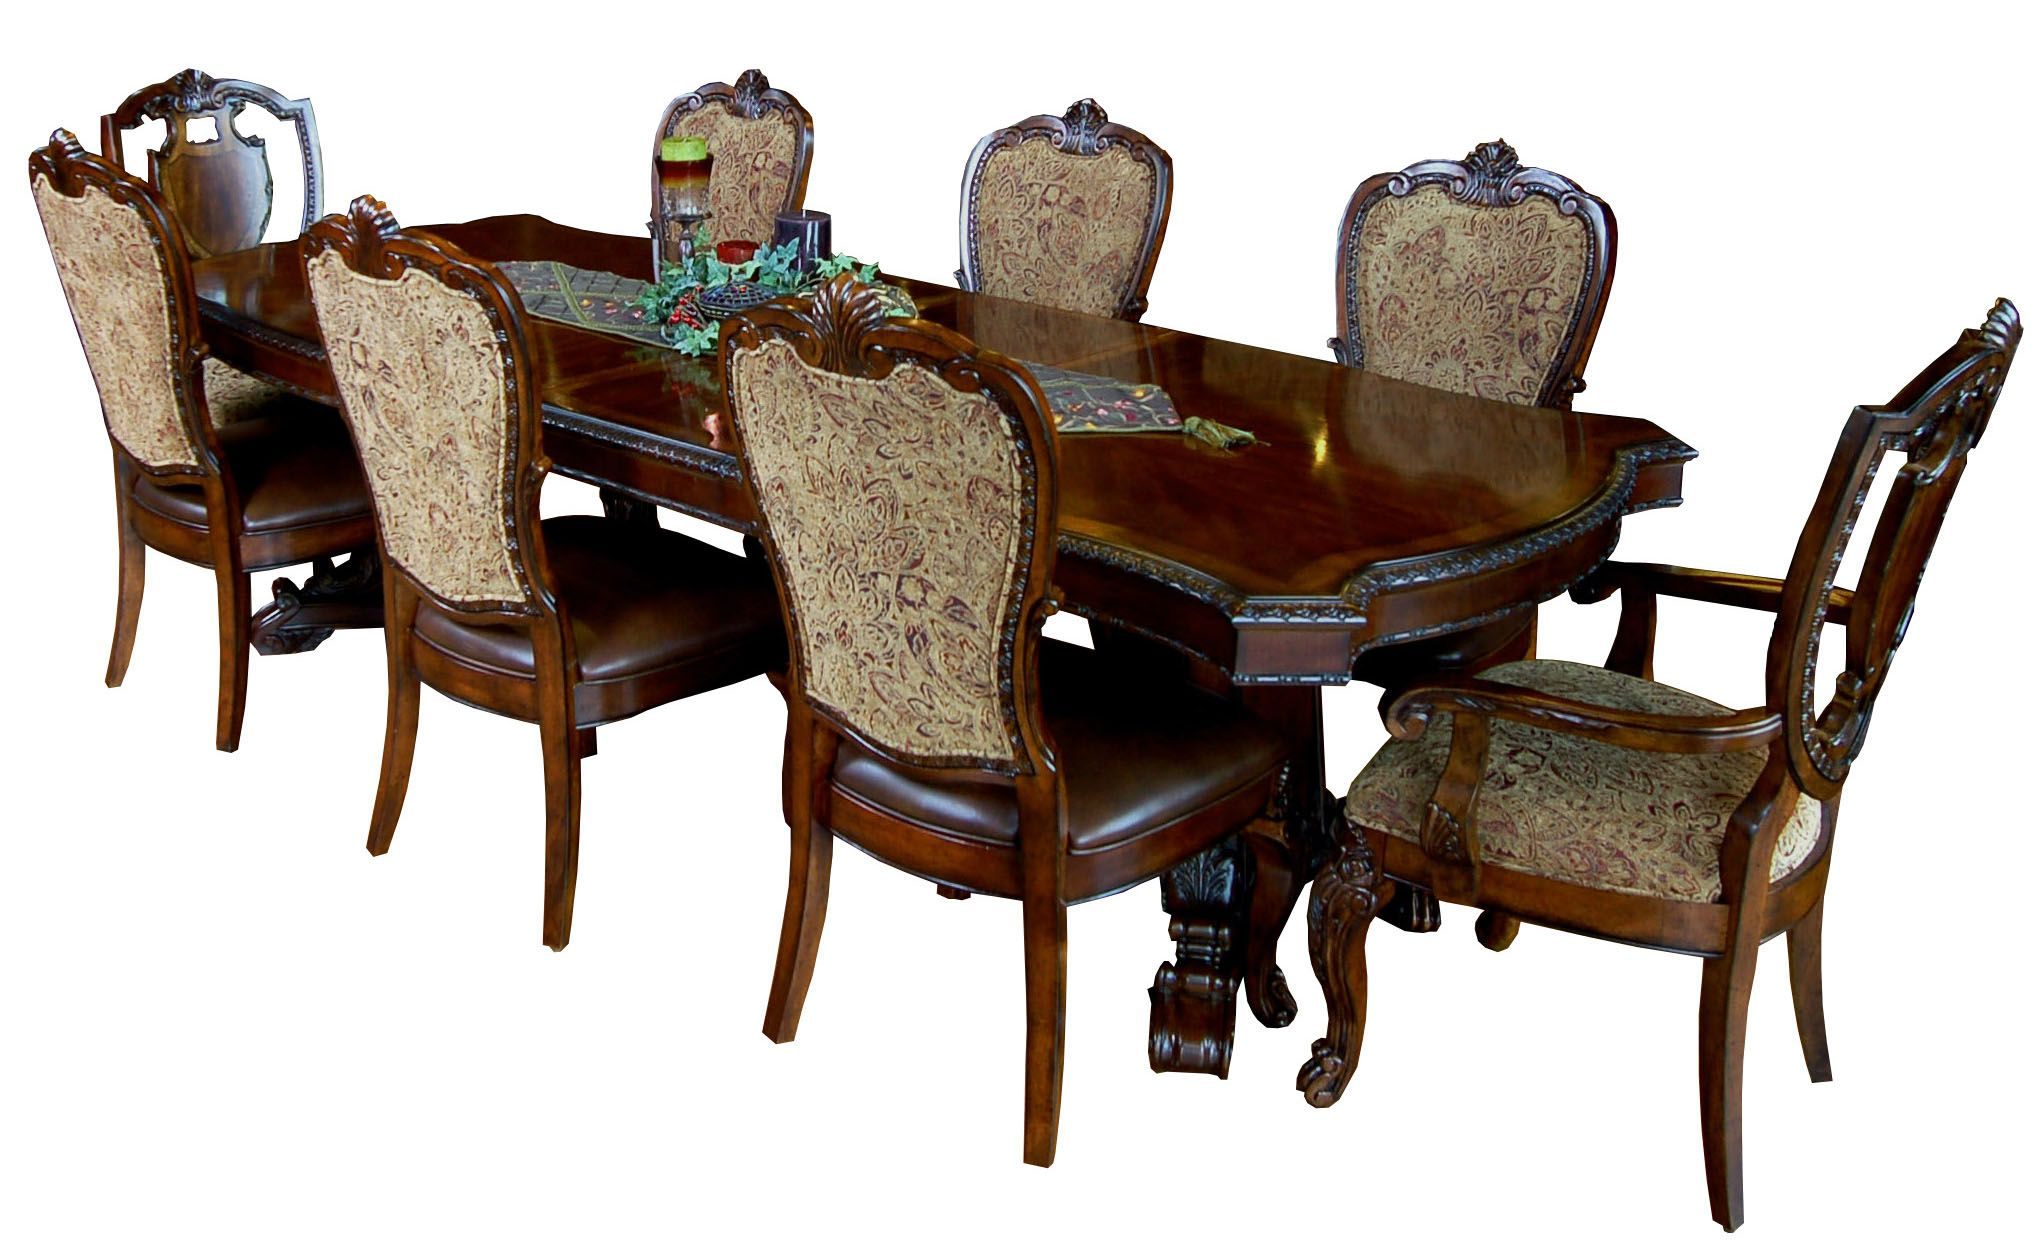 9 Piece Old World Dining Table And Chair Set Victorian Dining